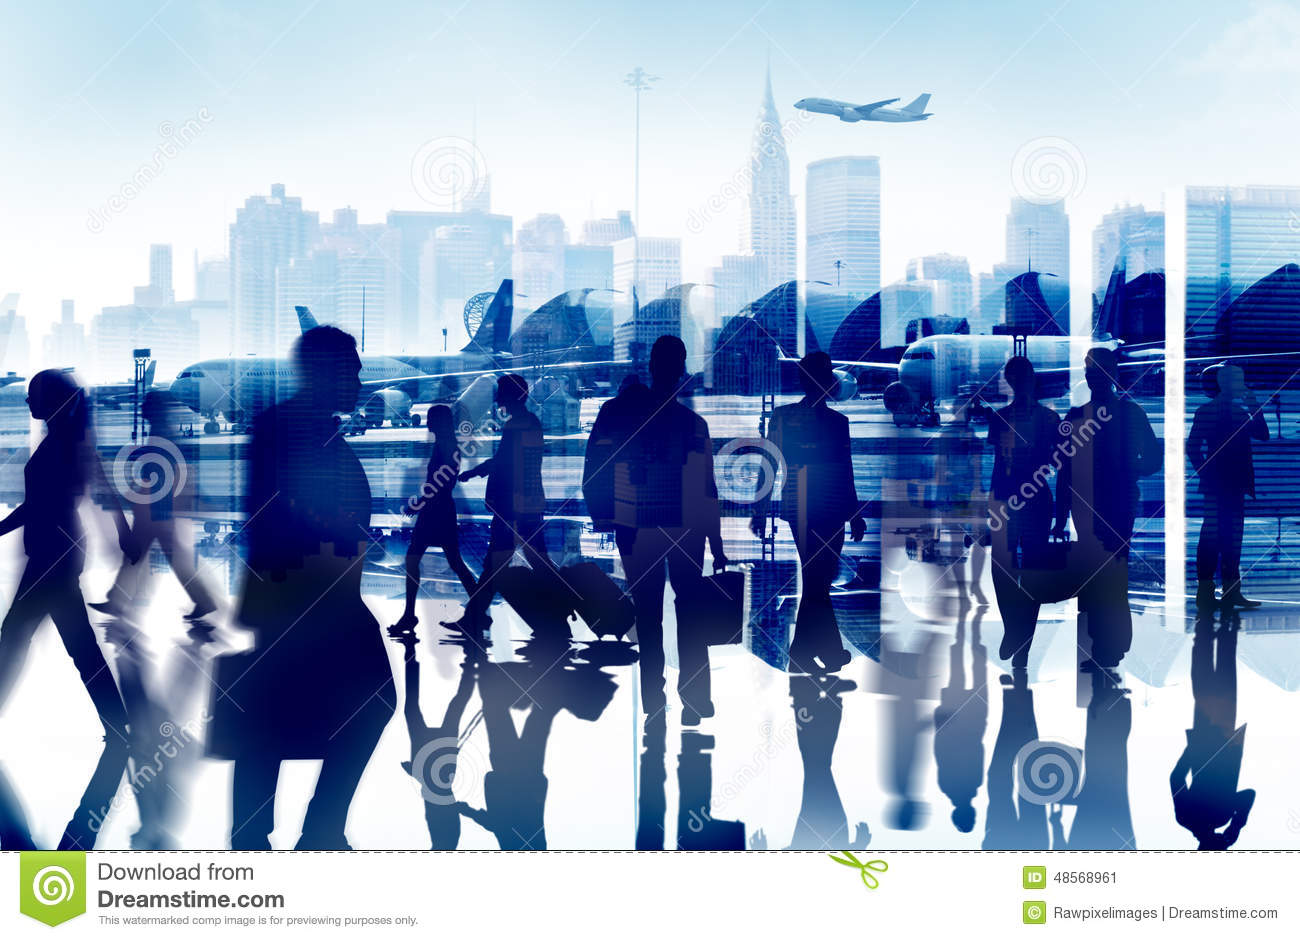 Free Images Traveling People Airport Bridge Business: Business People Travel Corporate Airport Passenger